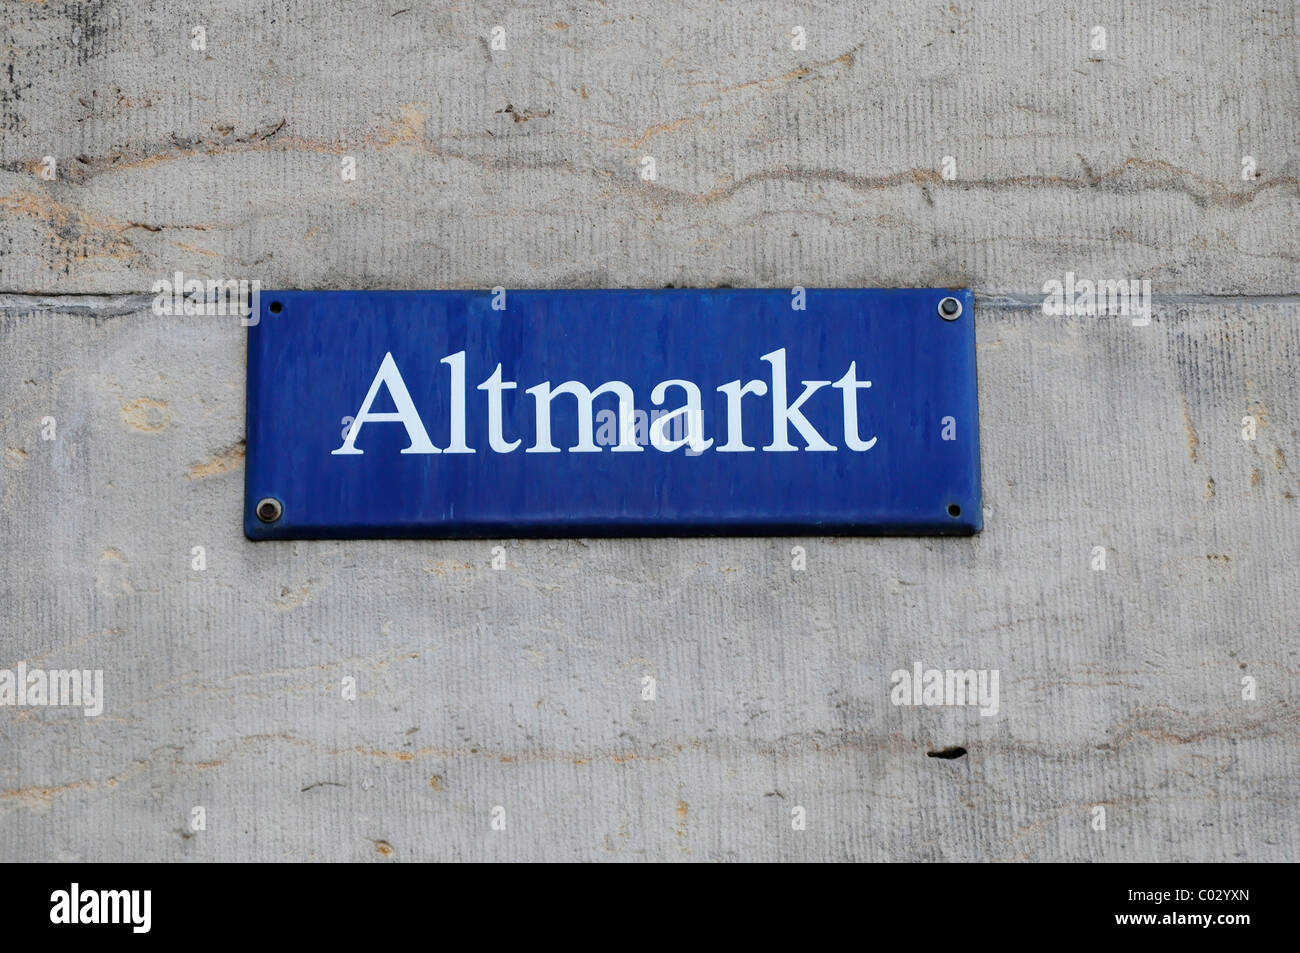 Altmarkt, street sign, Dresden, Saxony, Germany, Europe - Stock Image